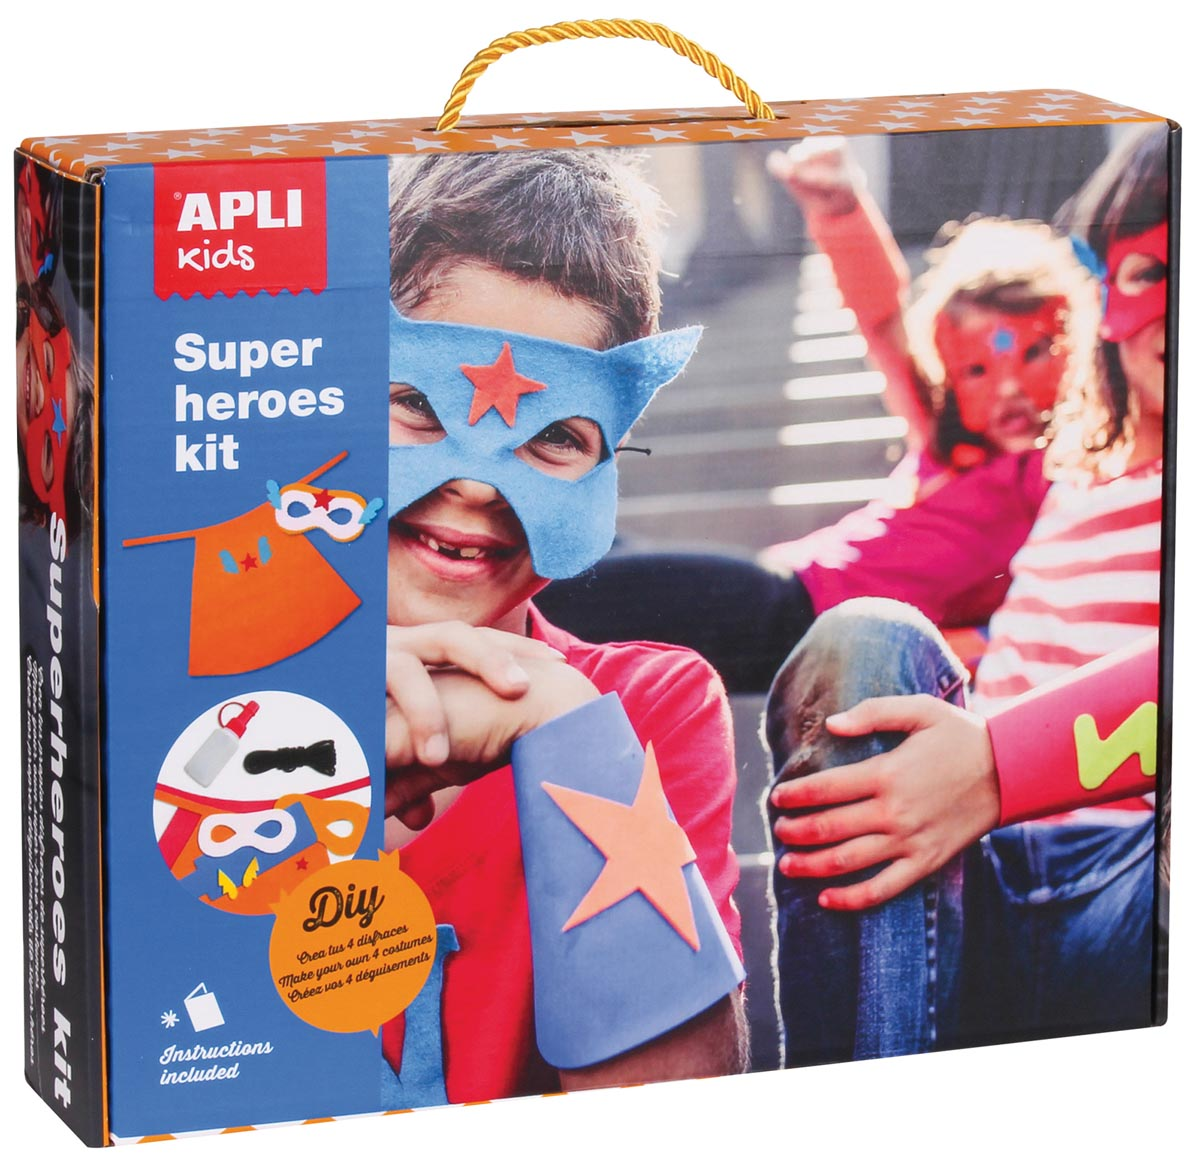 Apli Kids DIY verkleedkit Superhelden